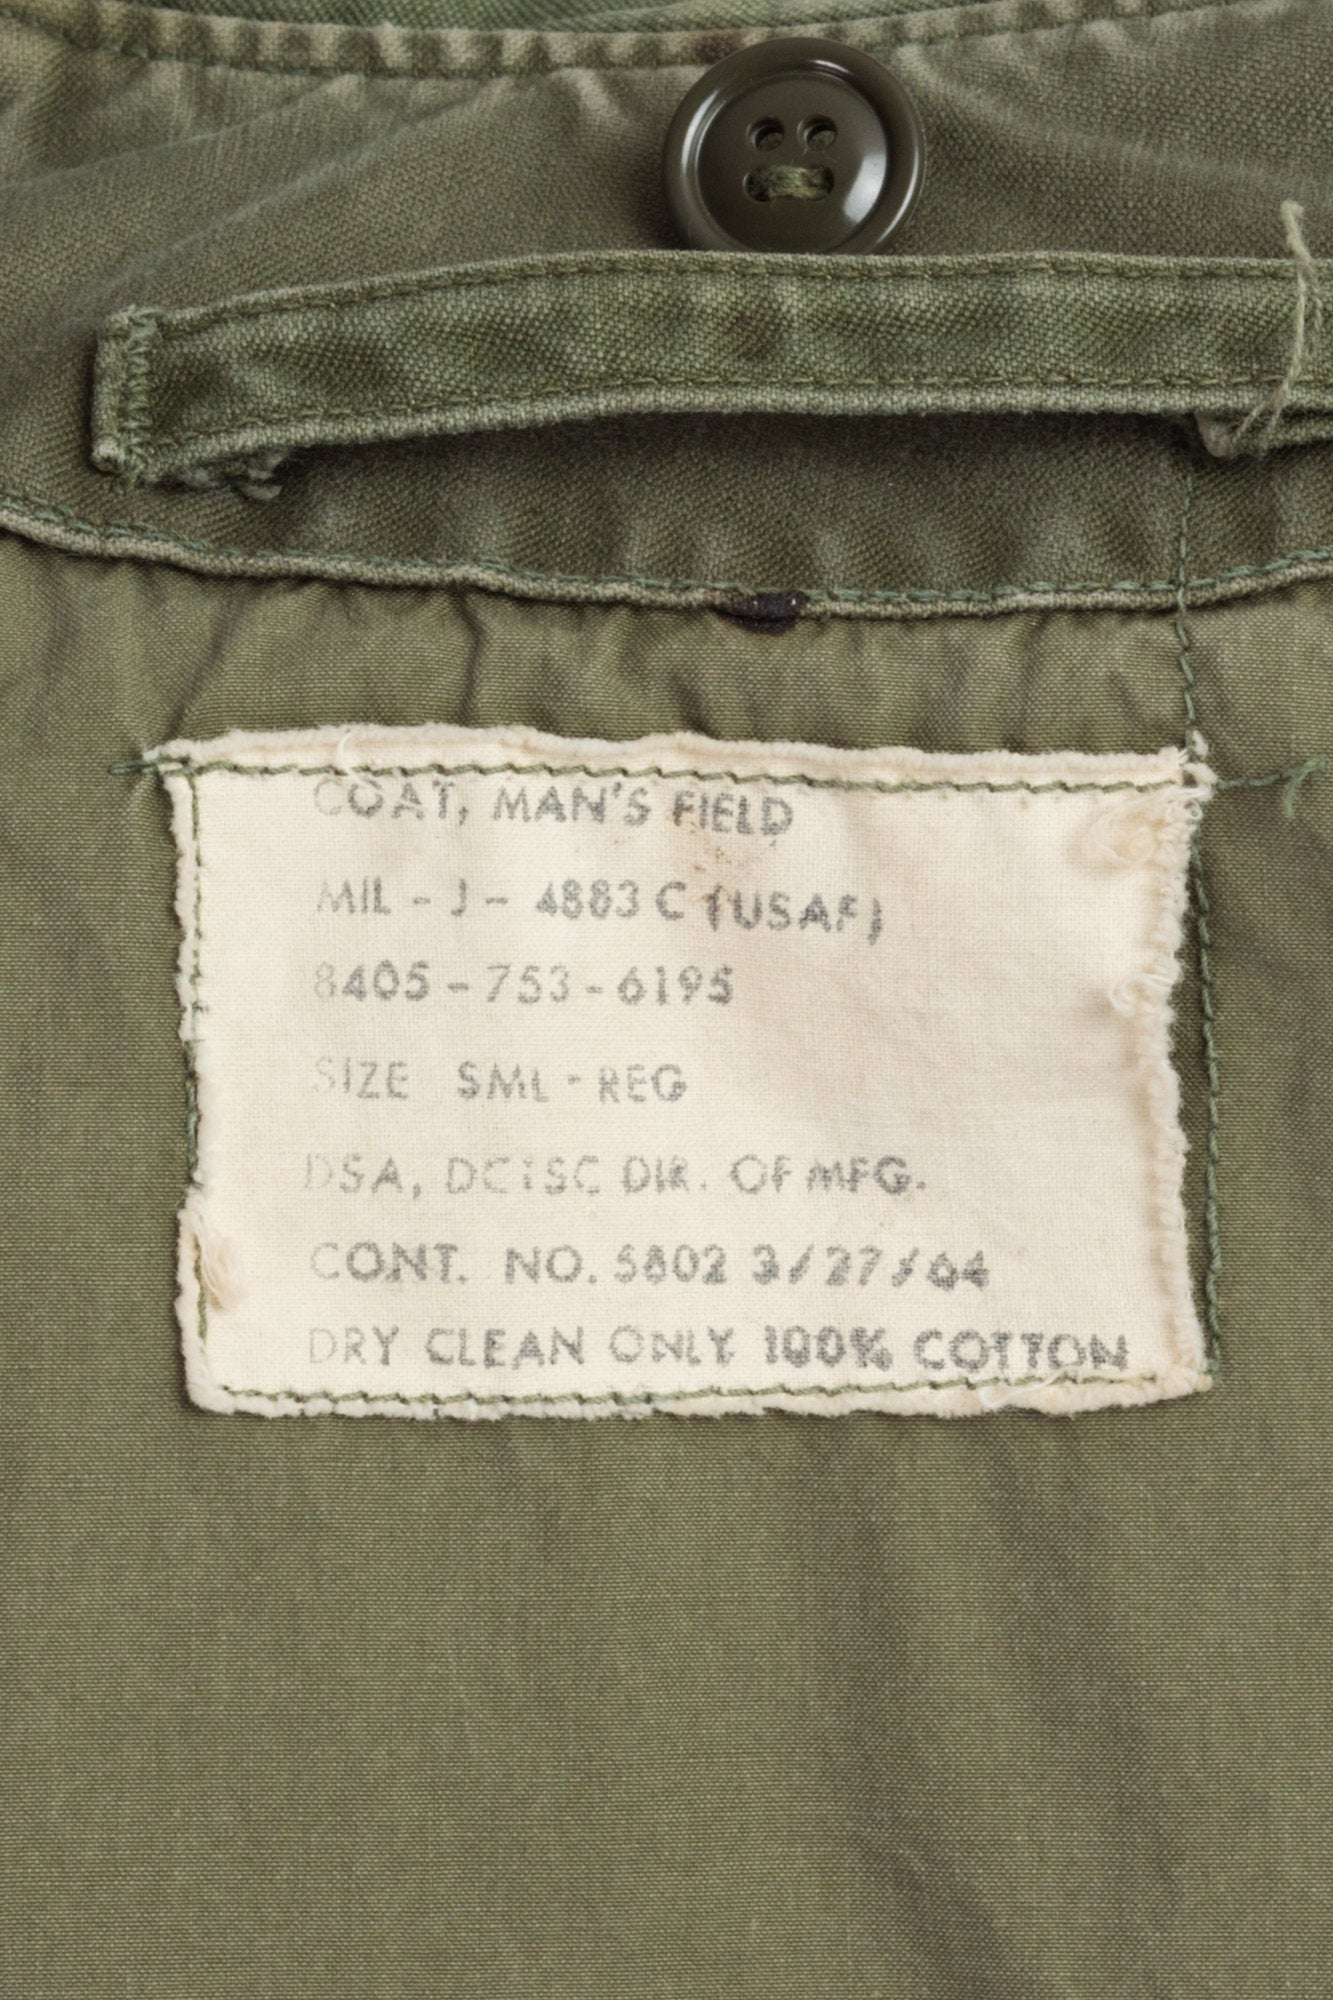 1964 Military M-51 Field Jacket - Men's Small